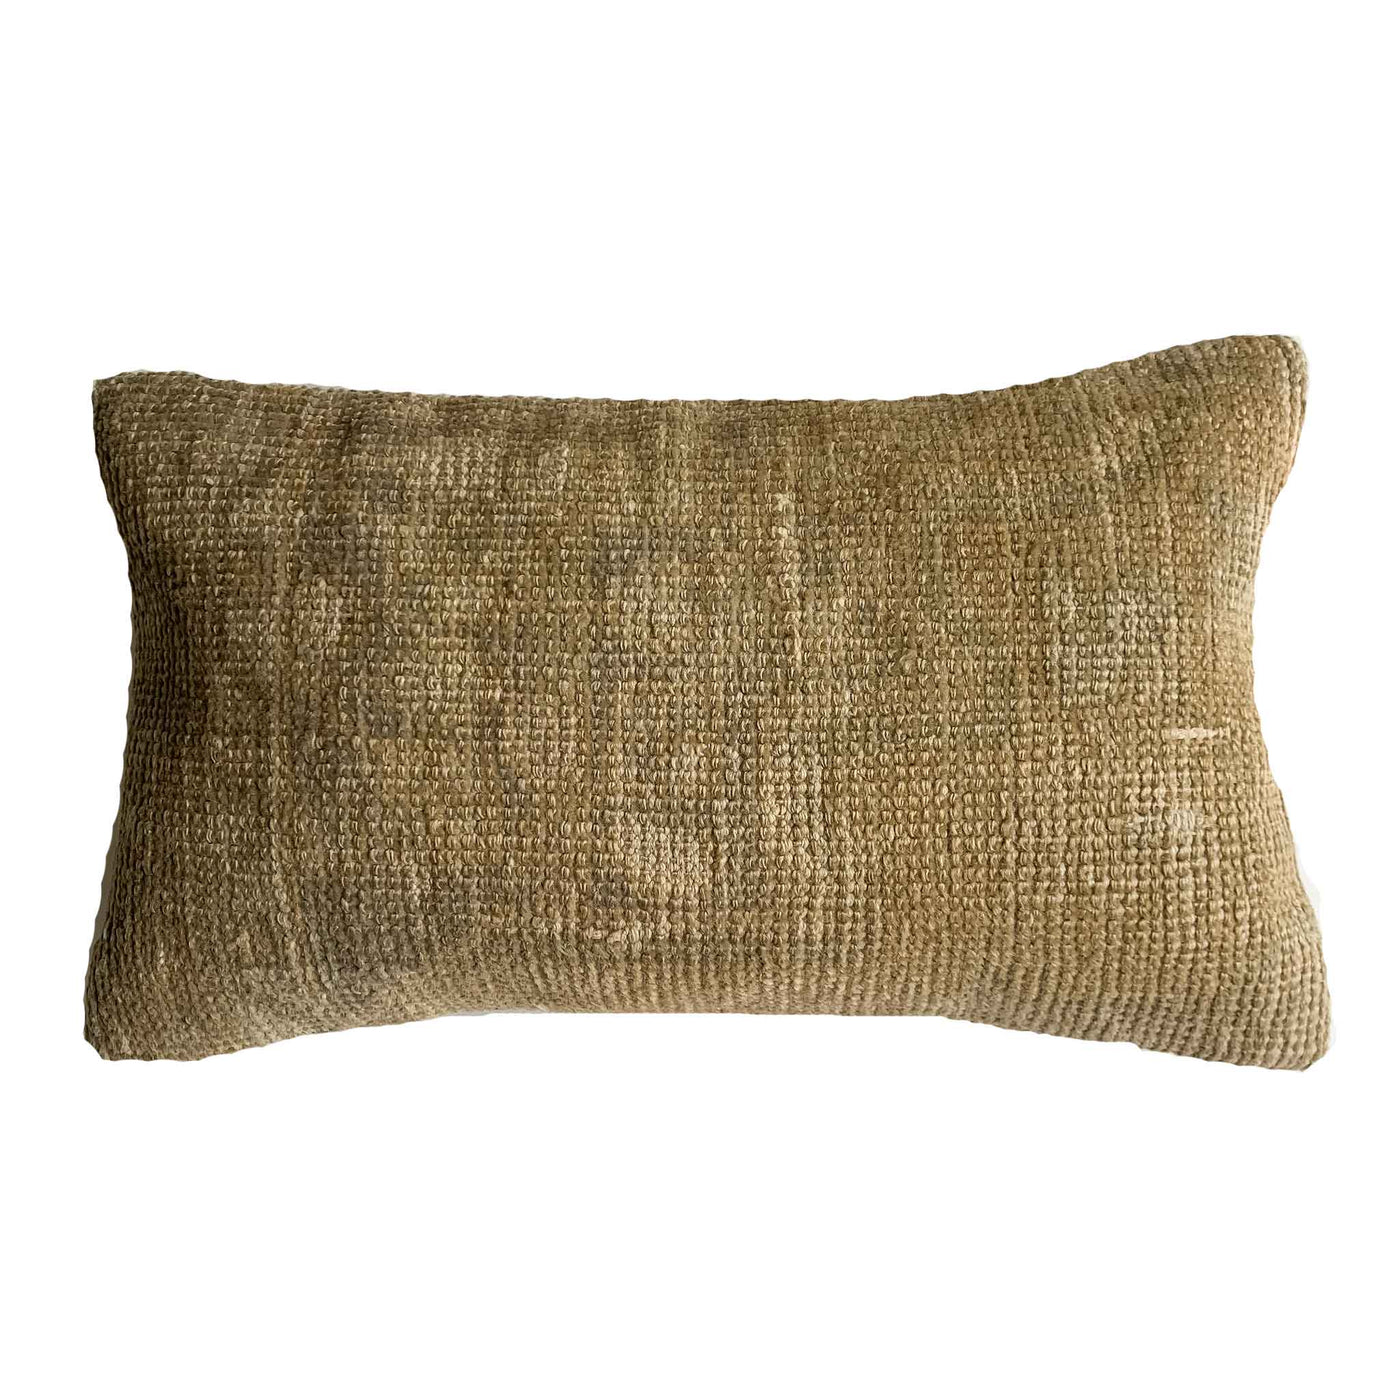 Caswell Turkish Kilim Lumbar - Studio Pillows